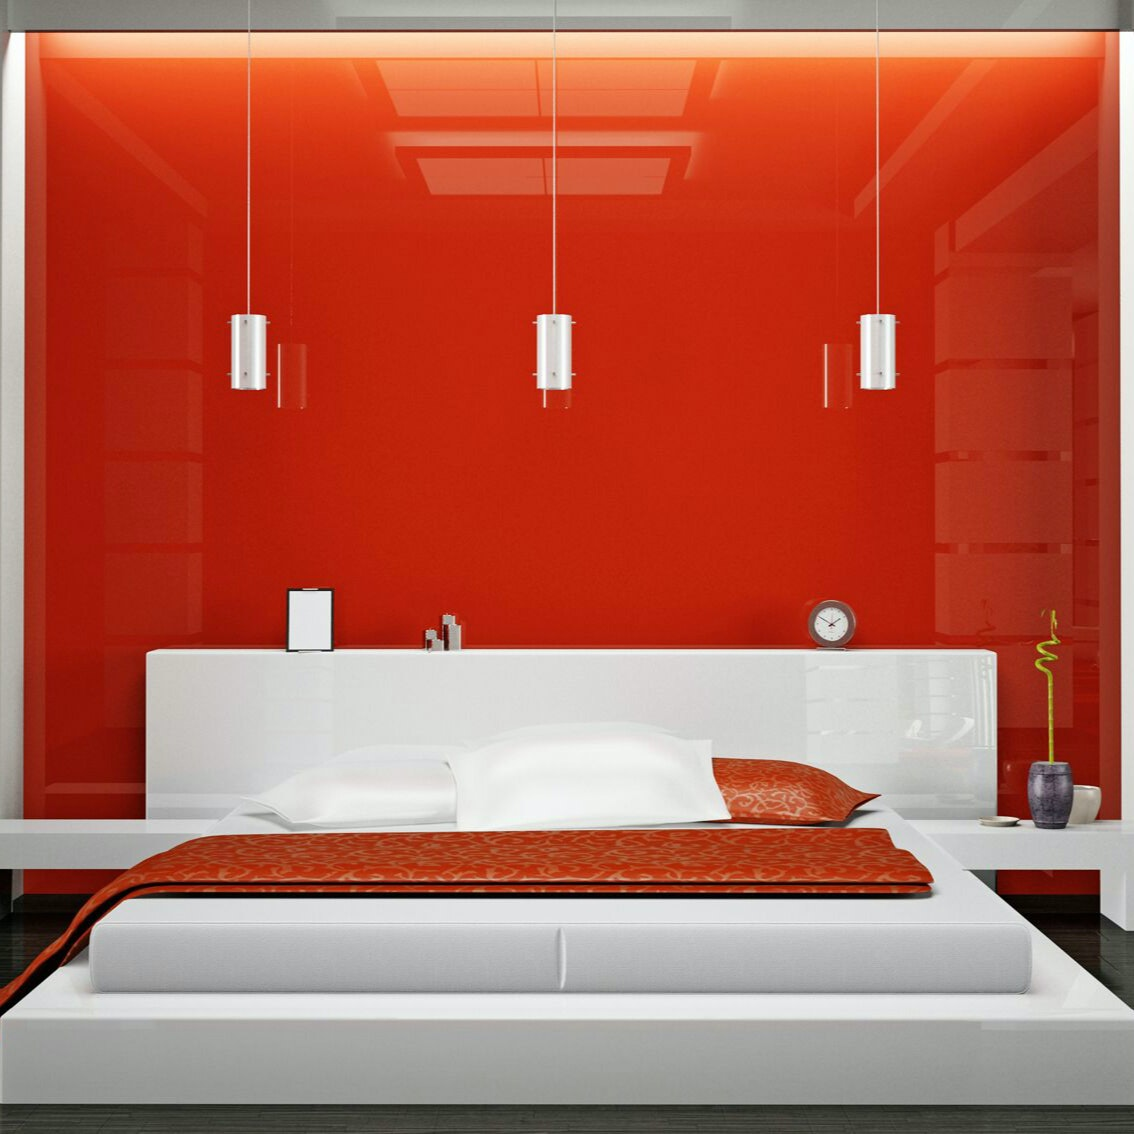 Square Orange Gloss Interior Wall With Bed